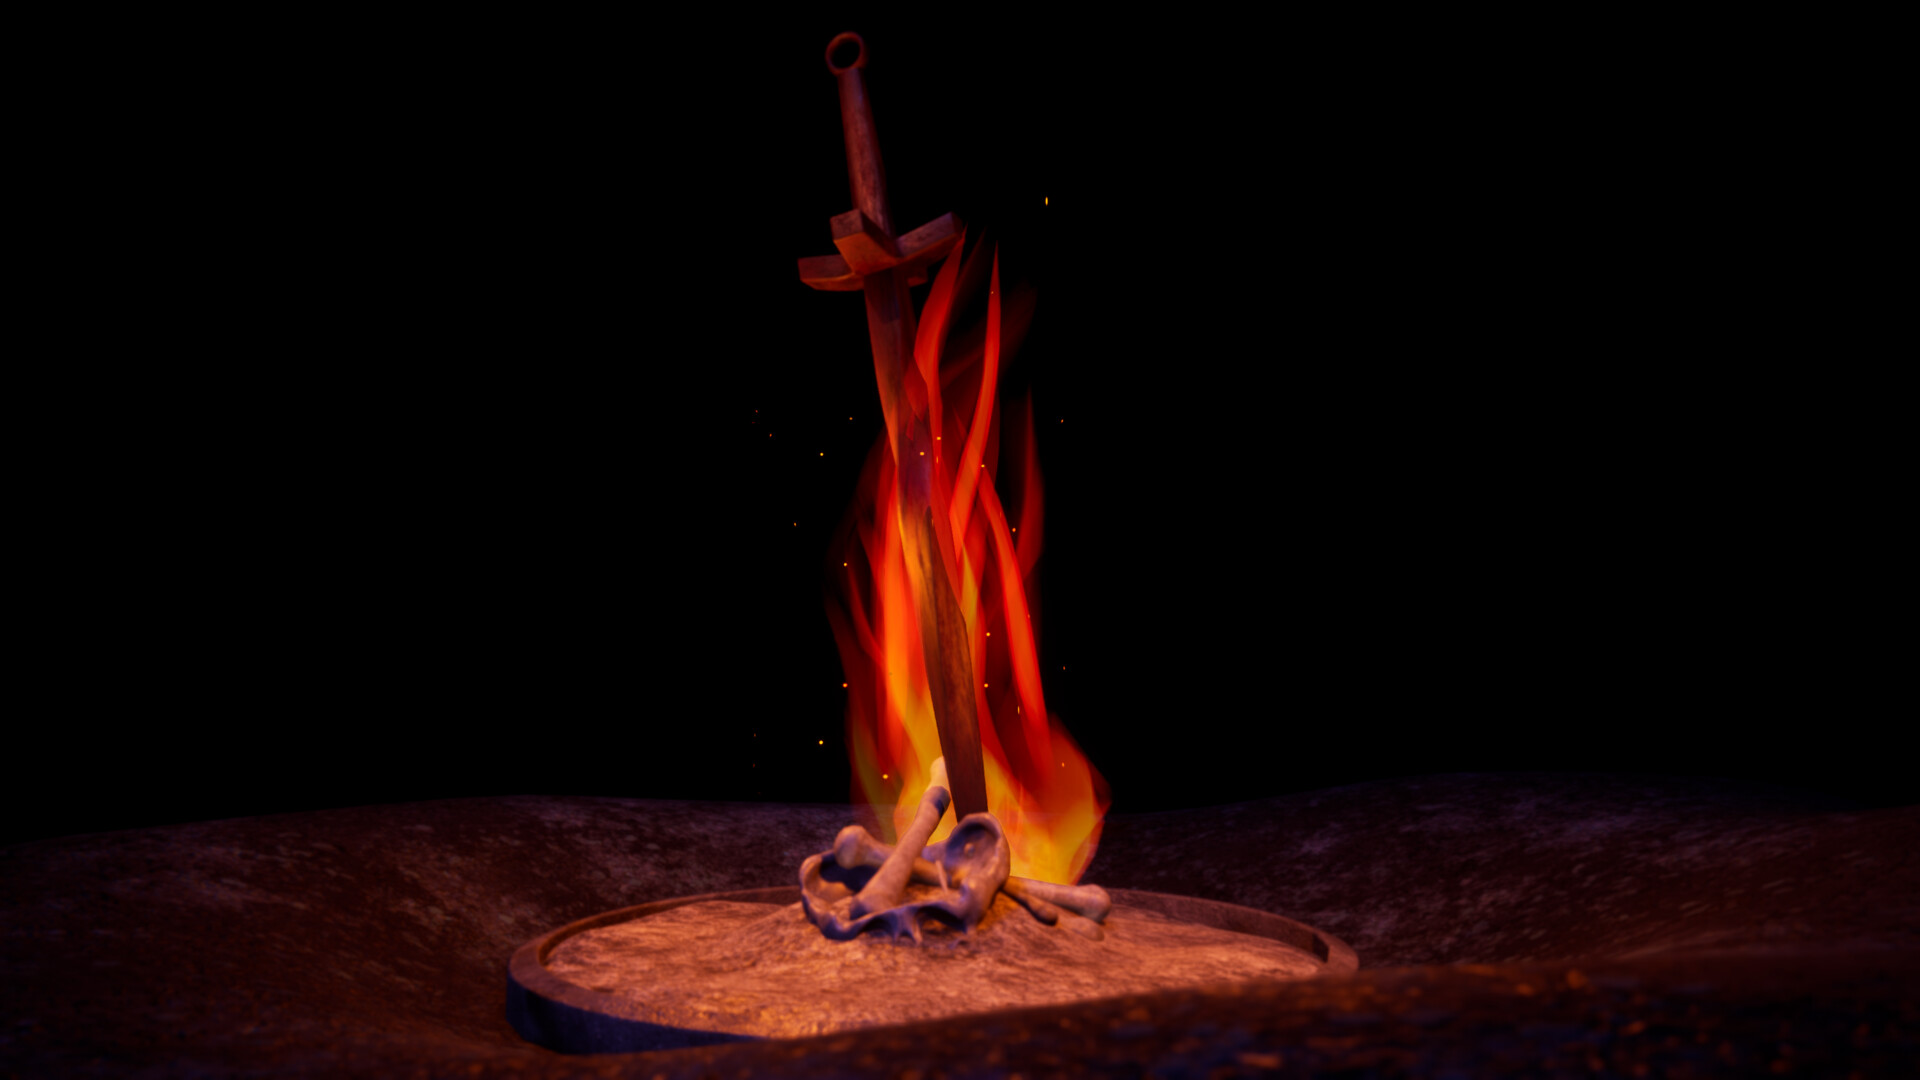 David Fernandez Cid Heat Cold Dark Souls 1 Bonfire Remake